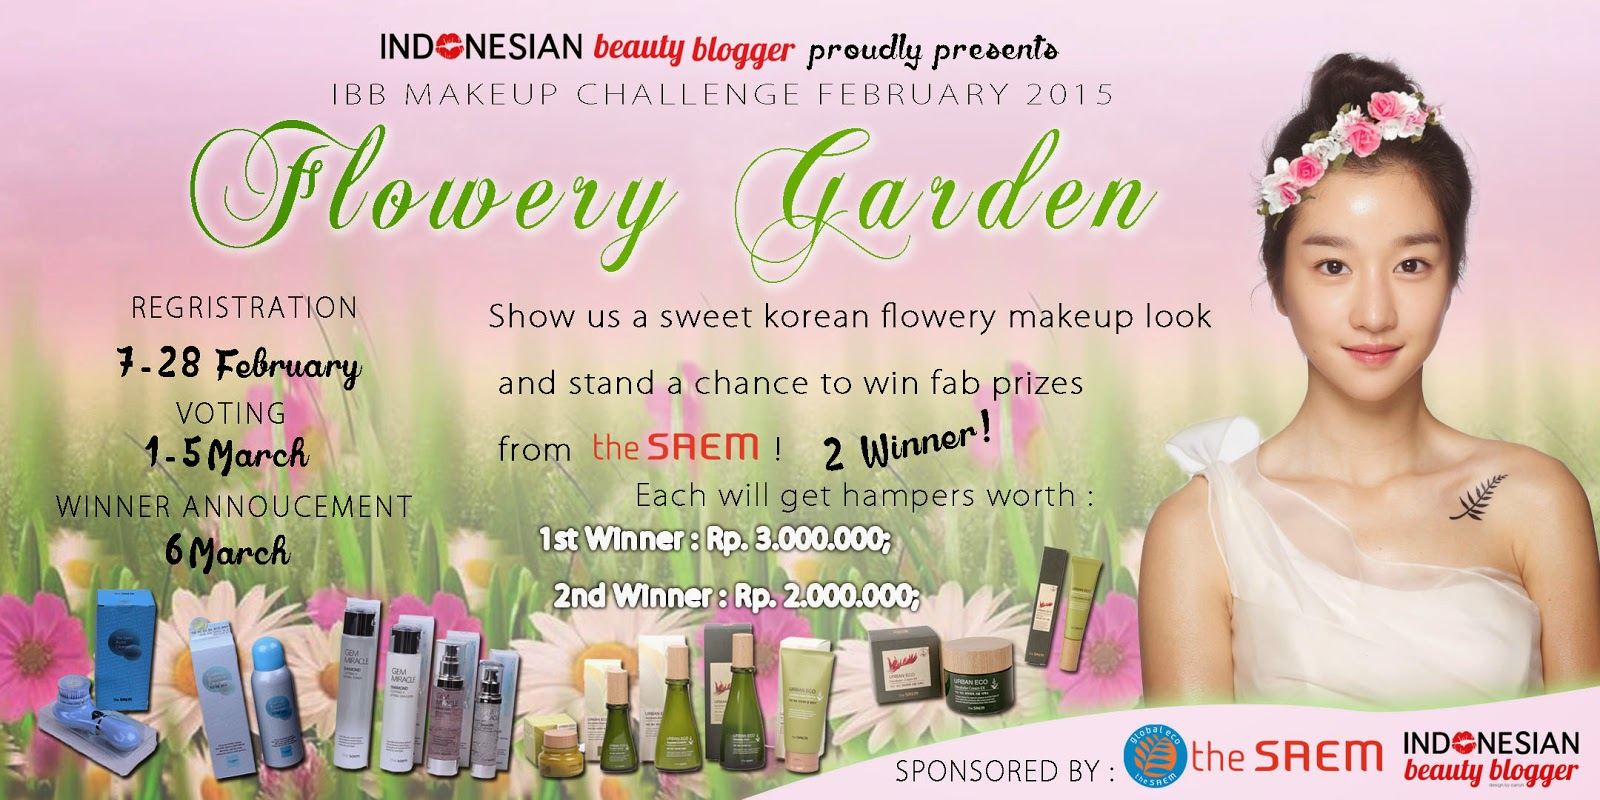 http://indonesianbeautyblogger.com